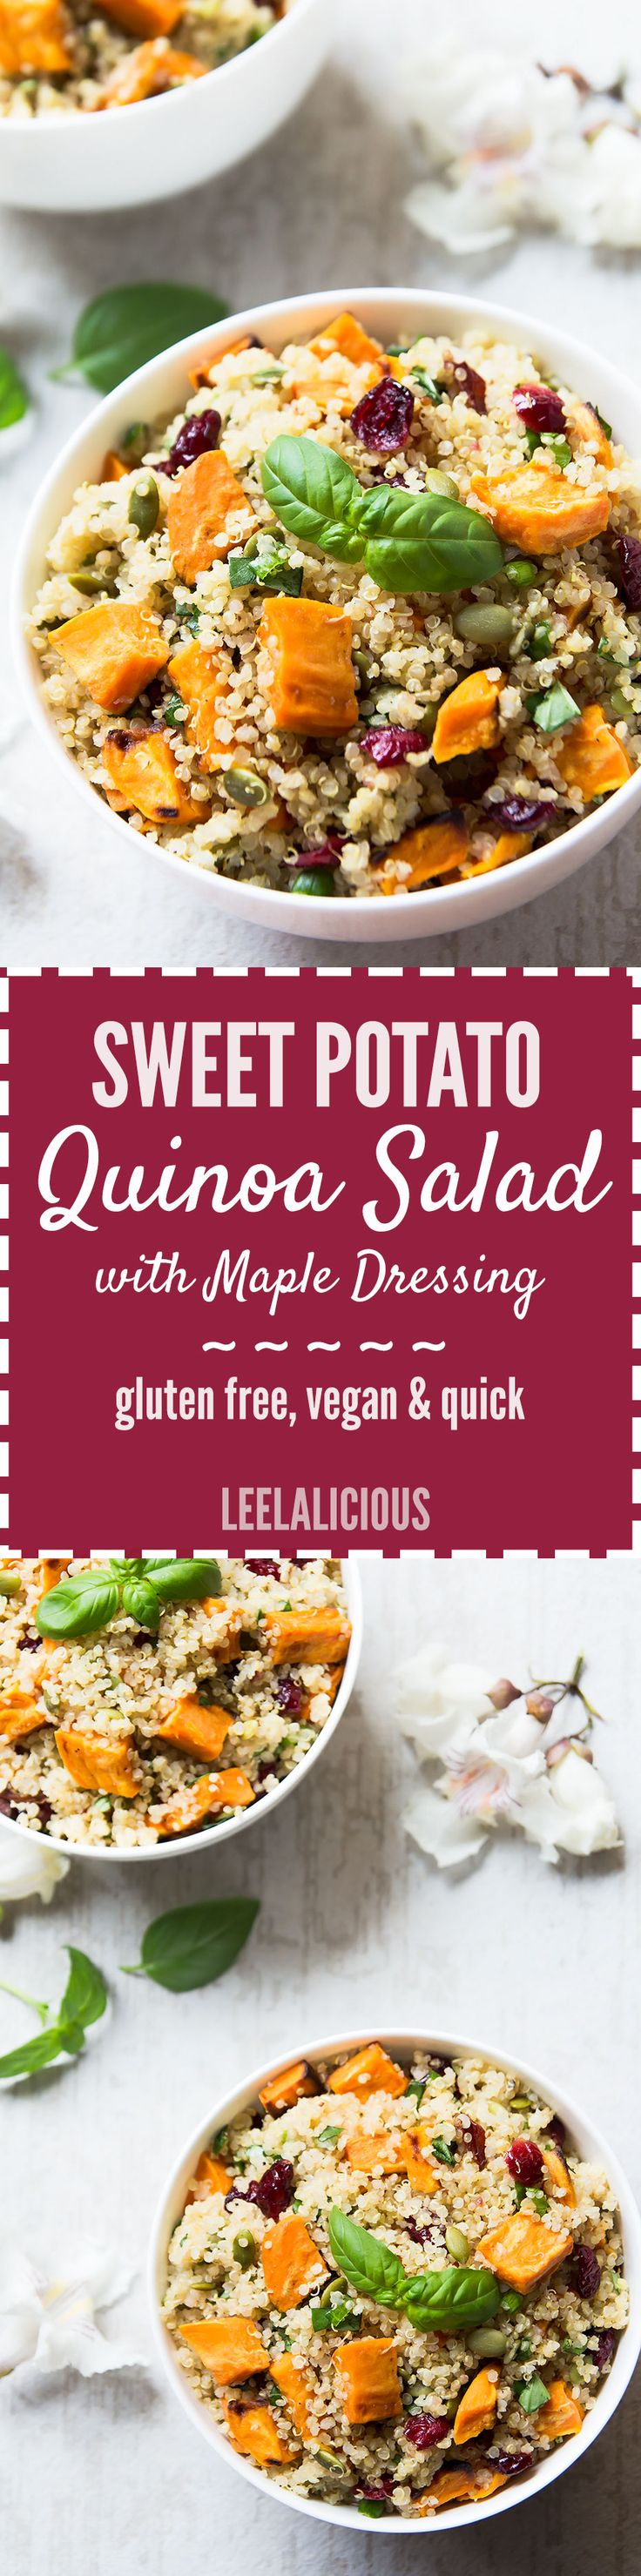 This healthy Sweet Potato Quinoa Salad with cranberries, pepitas and maple dressing is filled with complete protein, antioxidants and makes a delicious vegan main or side dish - warm or cold.